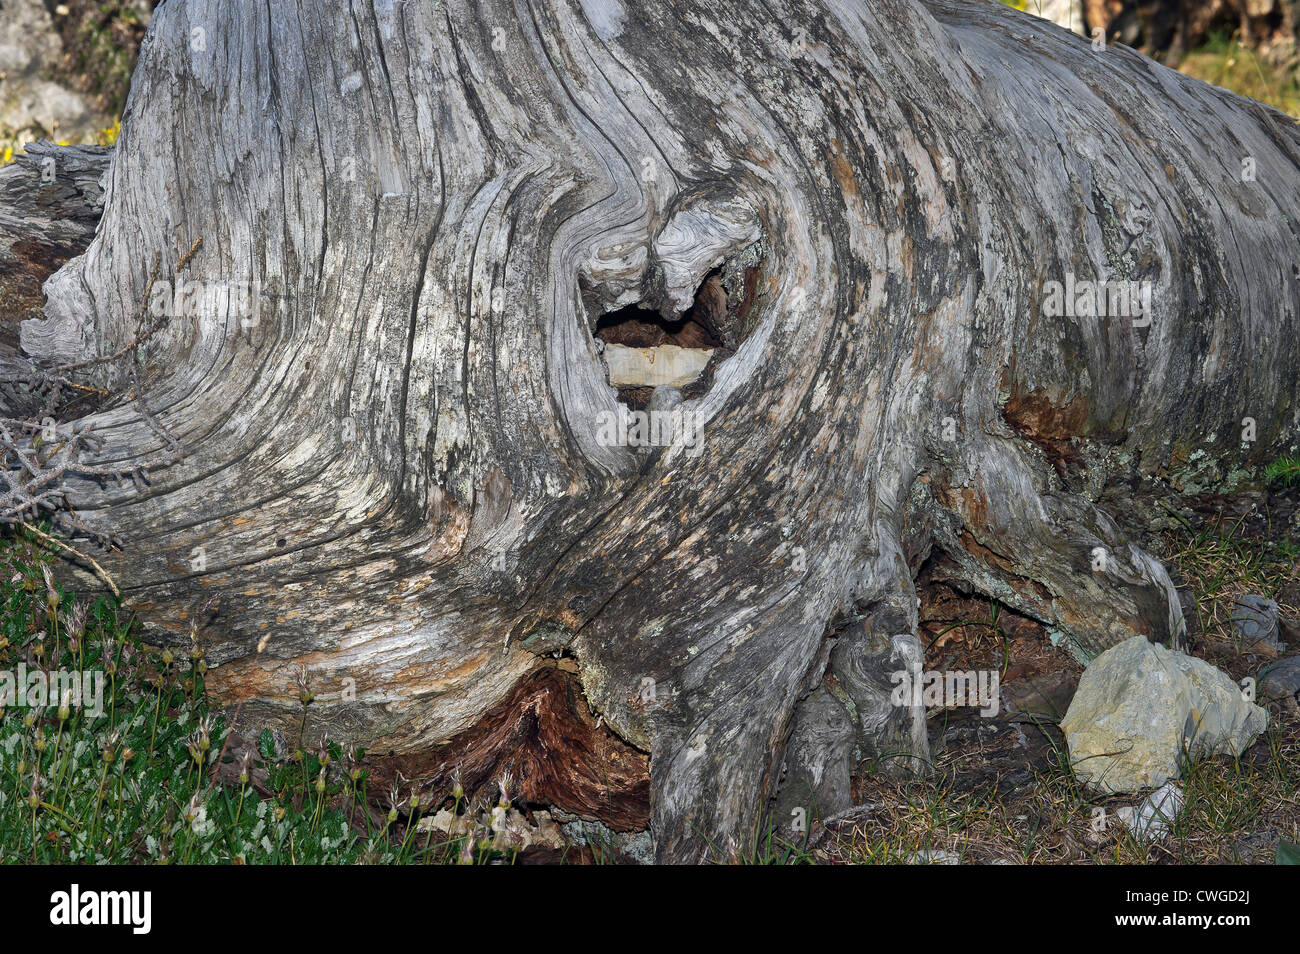 a conifer's stump, Susa valley, Piedmont, Italy - Stock Image